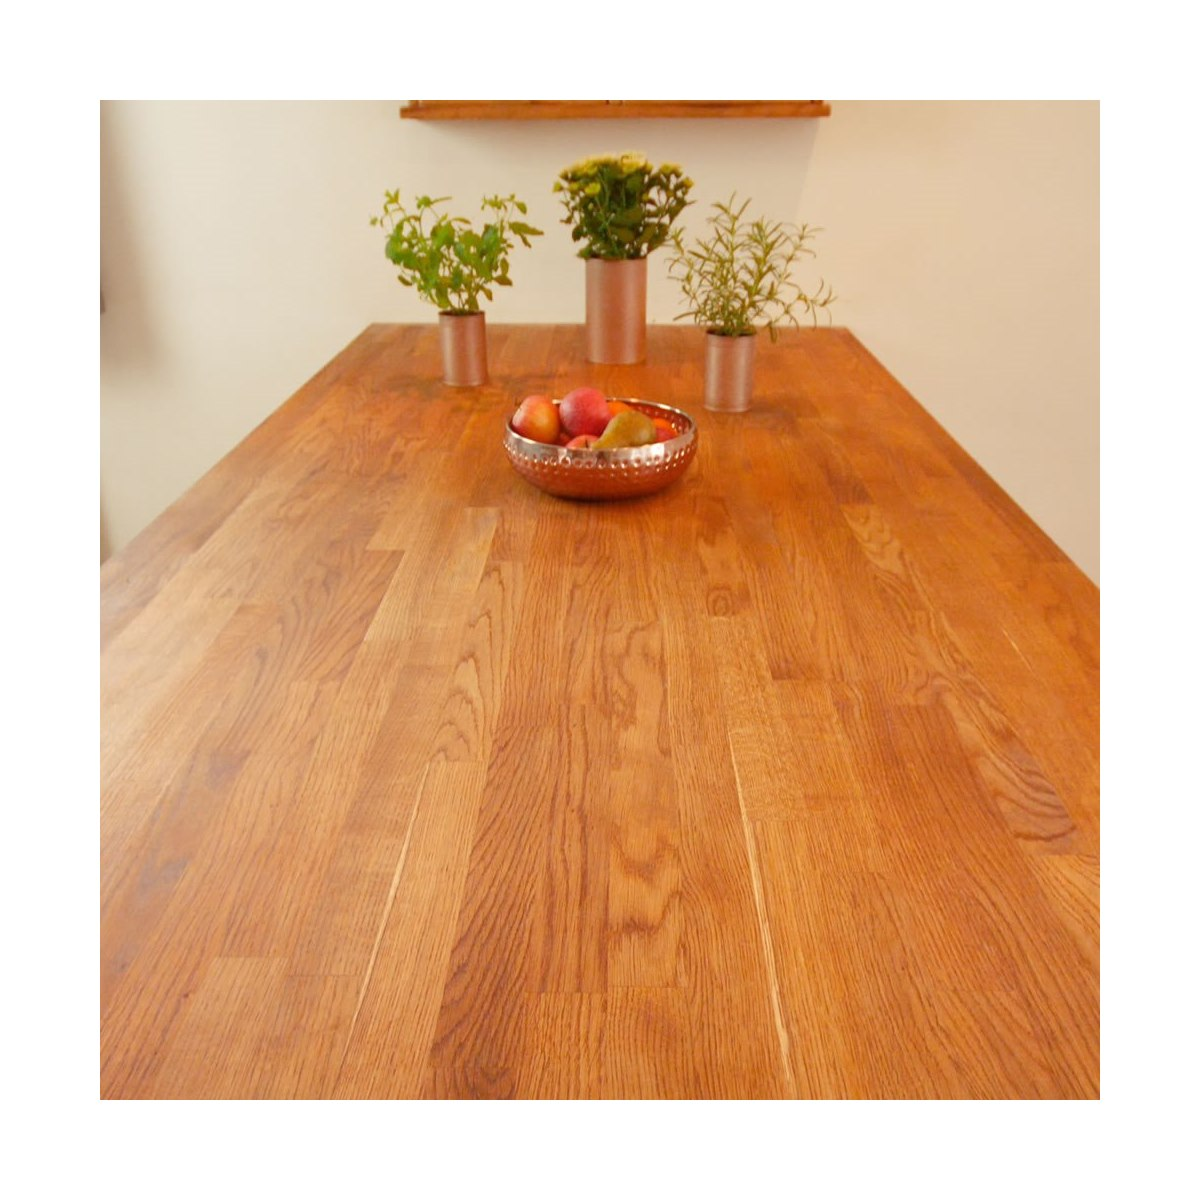 Danish Oil for Wood Work Surfaces